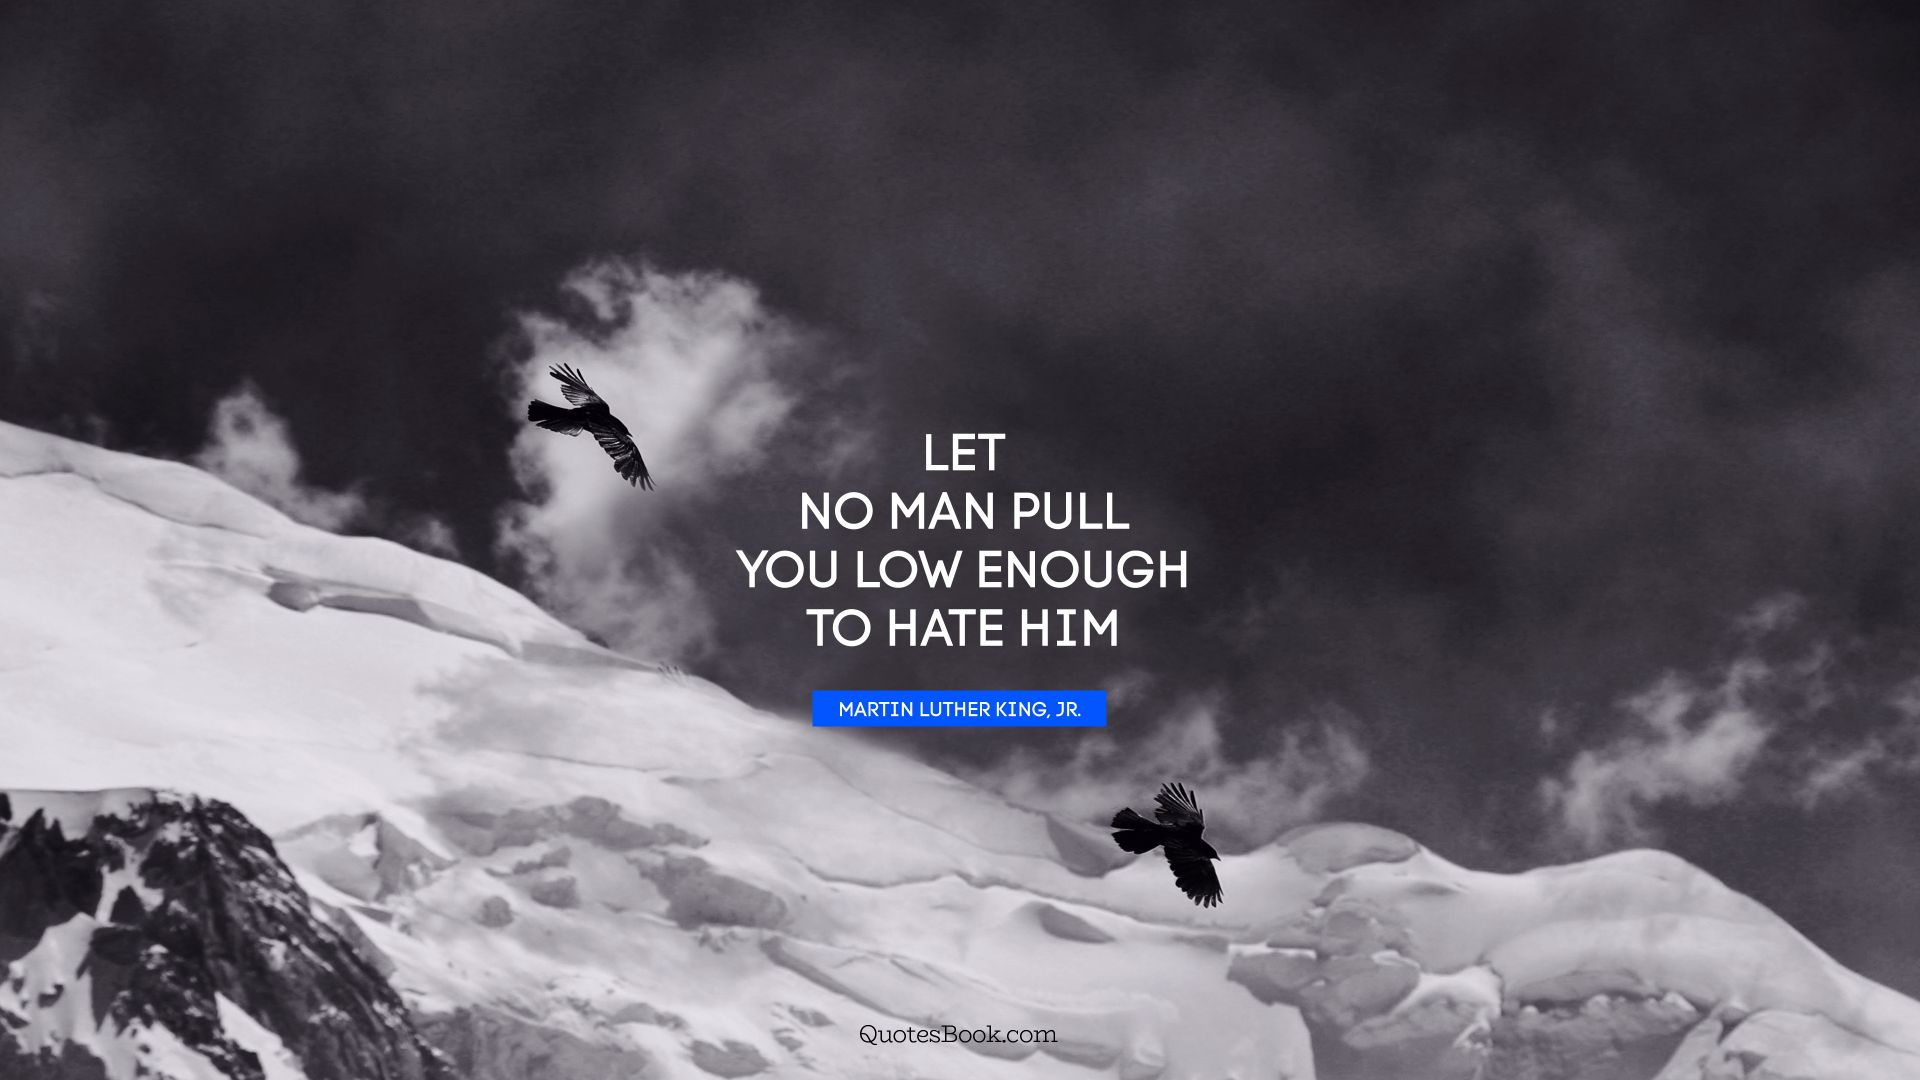 Let no man pull you low enough to hate him. - Quote by Martin Luther King, Jr.